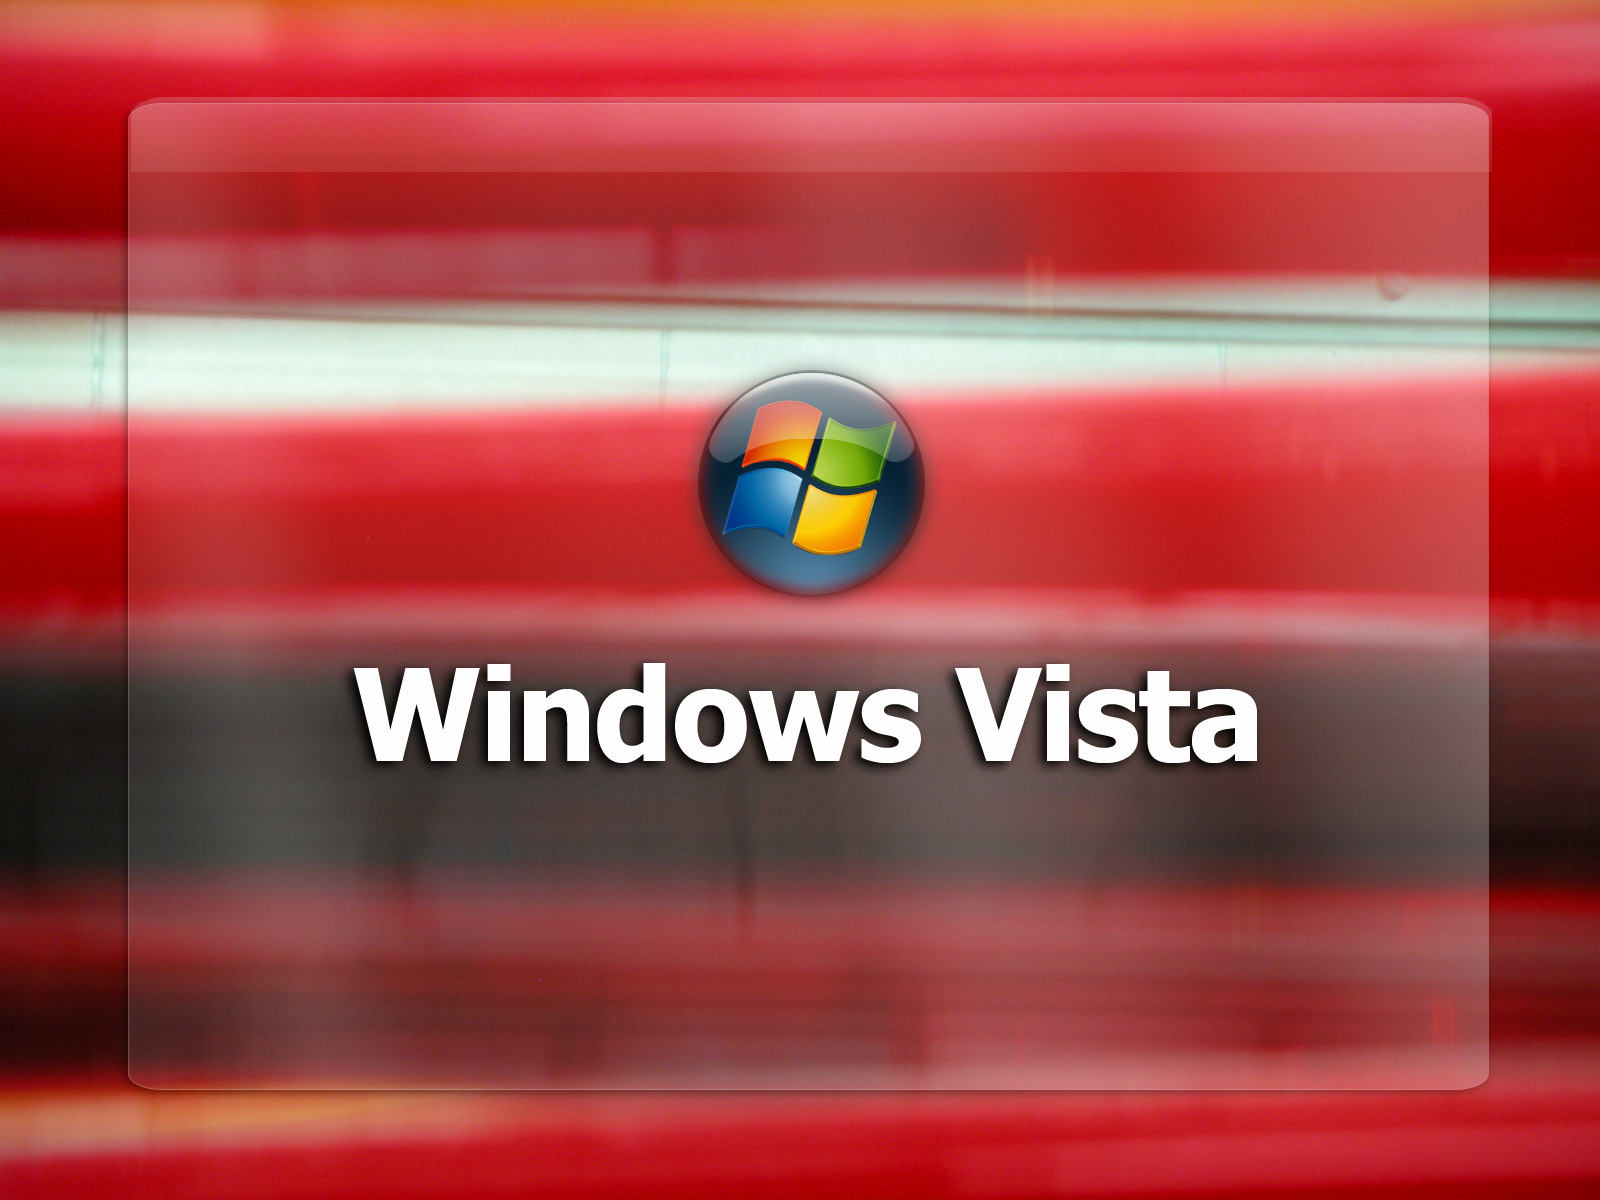 Windows Vista Ultimate Free Download Directly | Tech For You